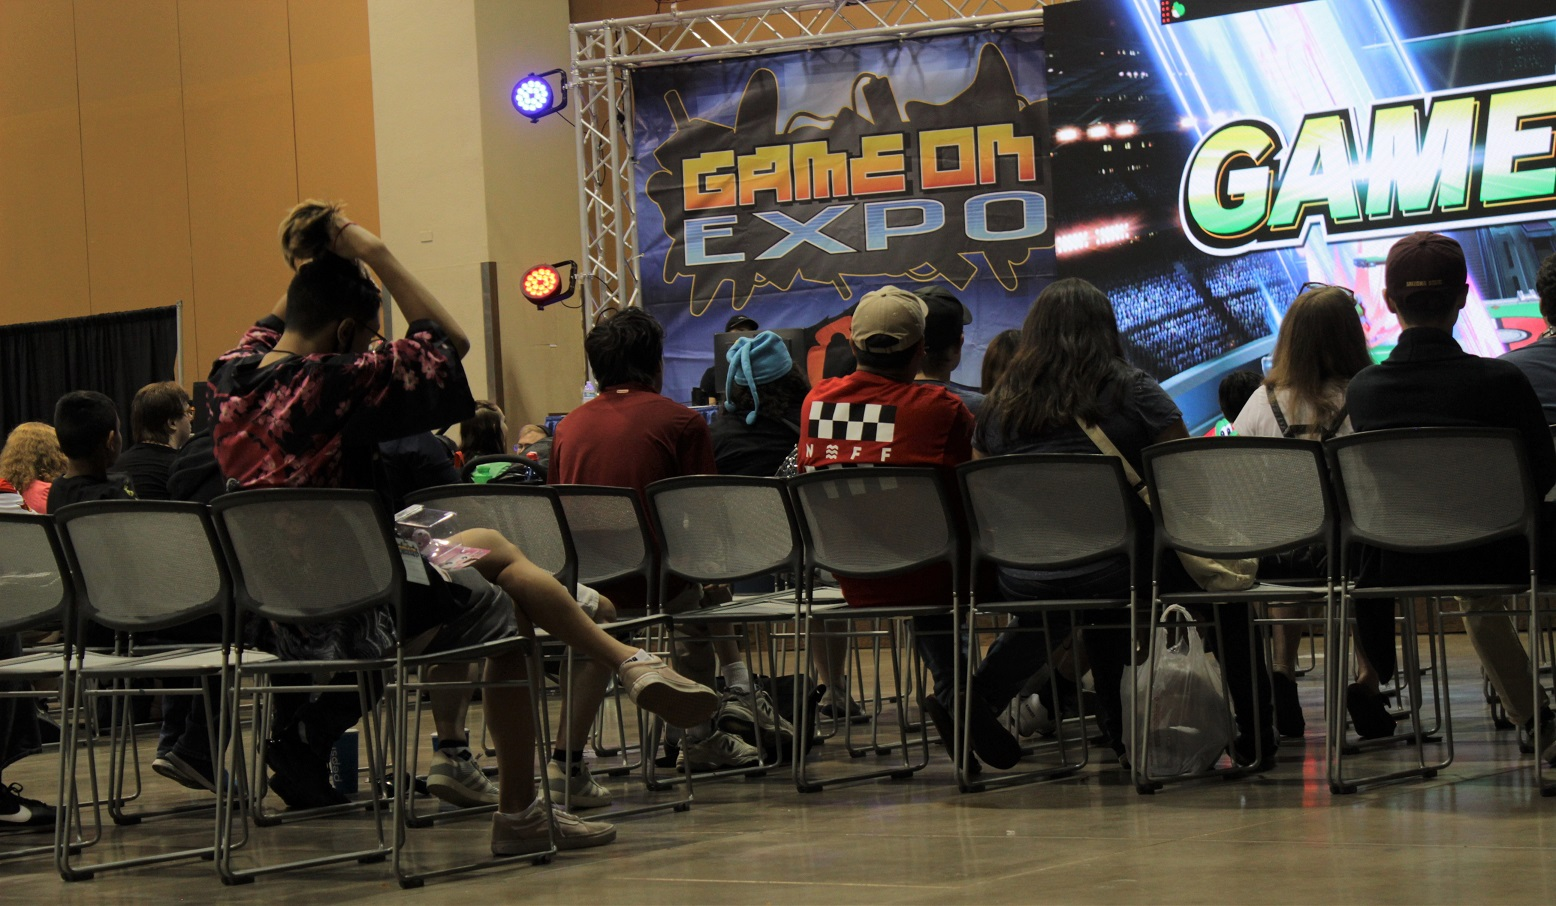 The larger tournament viewing area proved a good spot to take a short rest and watch some play at hand. Photo by Justin Franco.